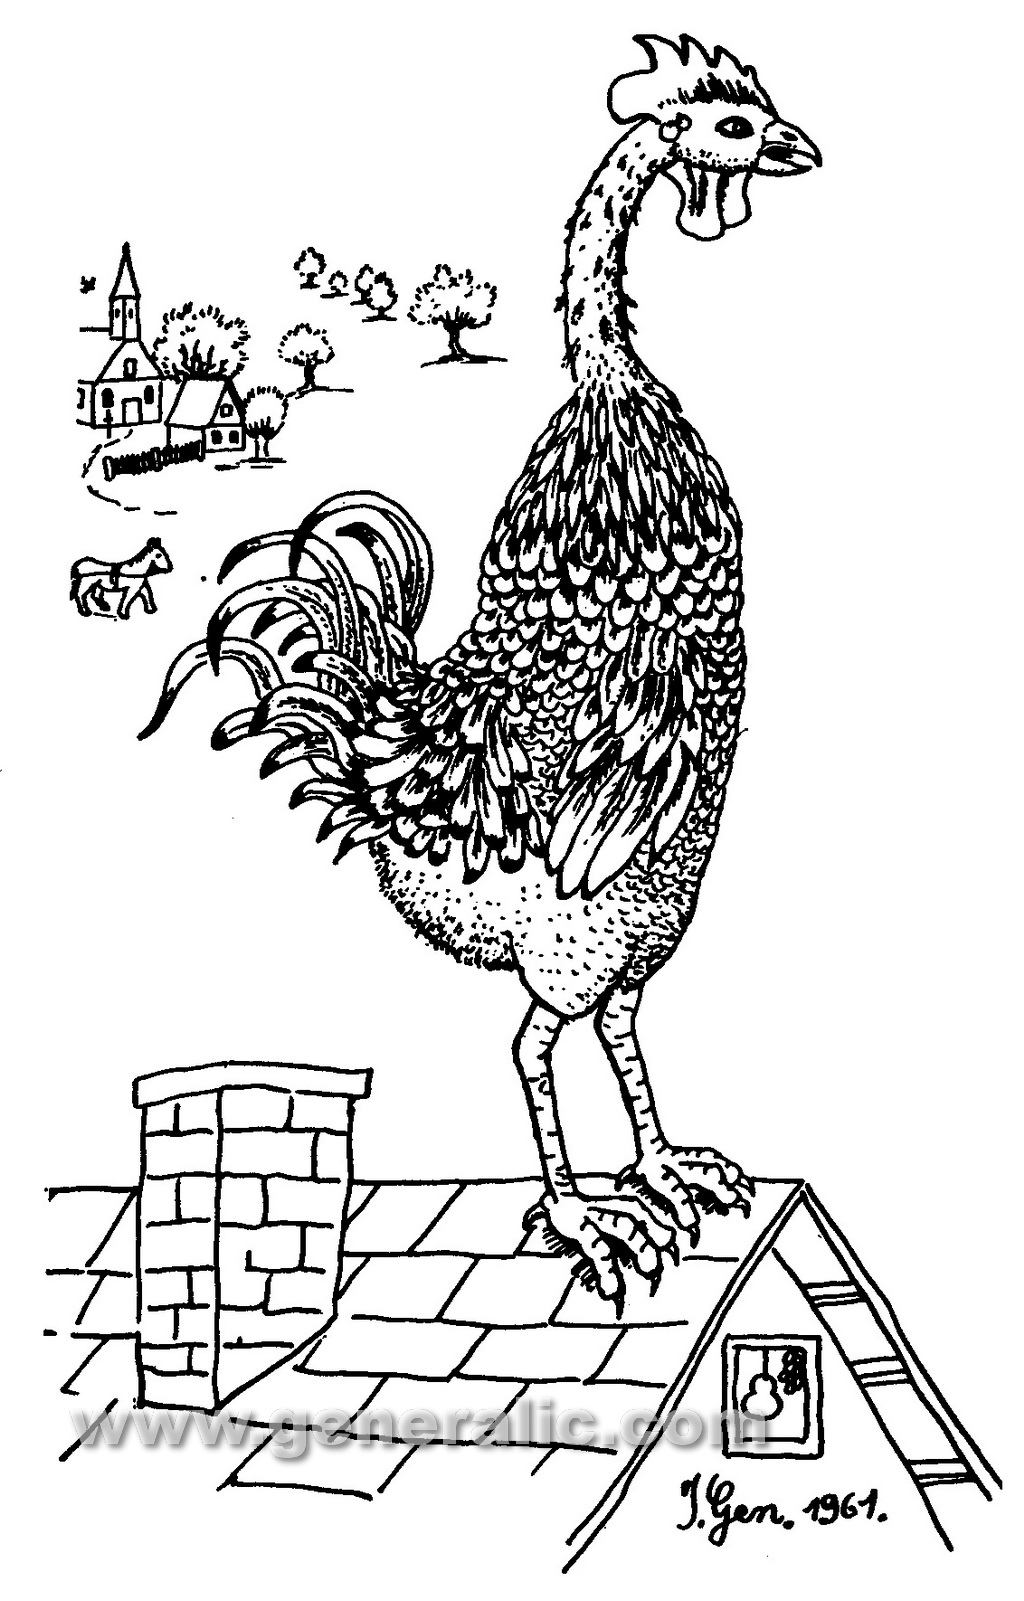 Ivan Generalic, 1961, Rooster on a roof, drawing